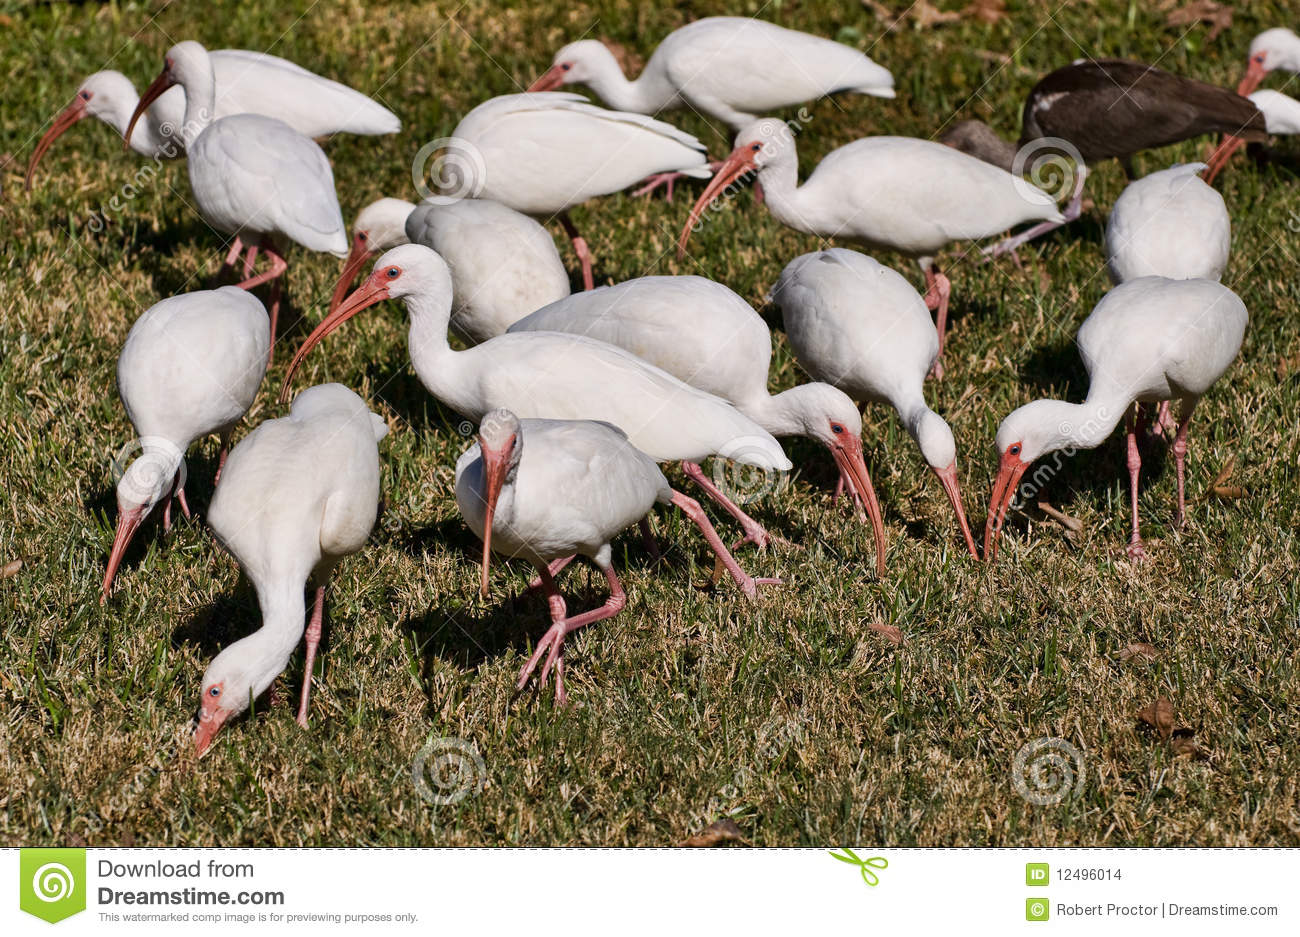 eater map with Stock Images White Ibis Birds Florida Image12496014 on Teater Store Og Smaa I Nyborg additionally 2061713771 in addition Helmeted Honeyeater further Sales Skills together with 4113722068.